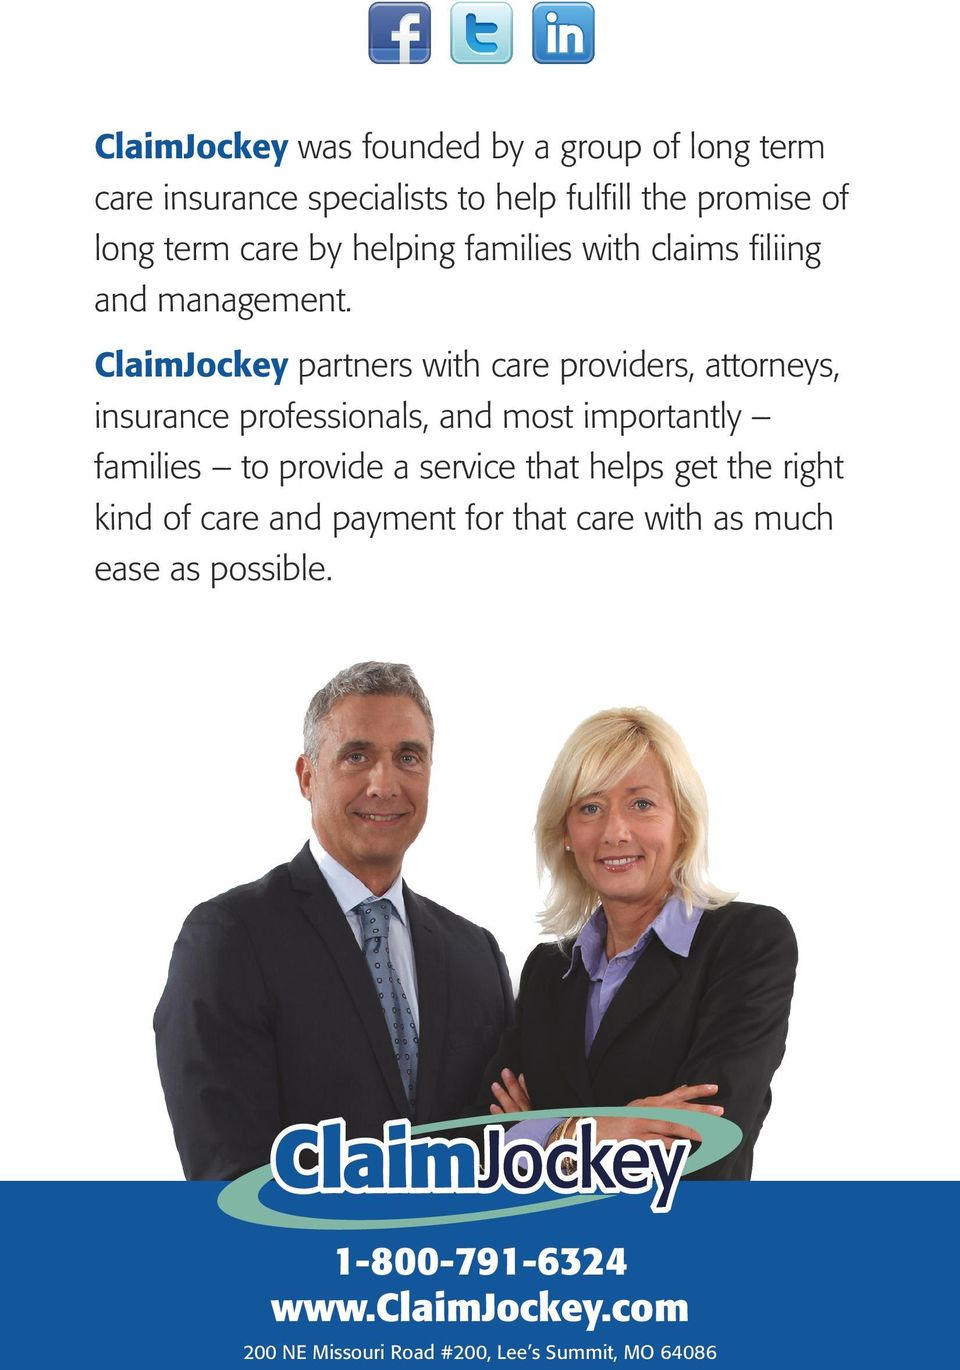 ClaimJockey partners with care providers, attorneys, insurance professionals, and most importantly families to provide a